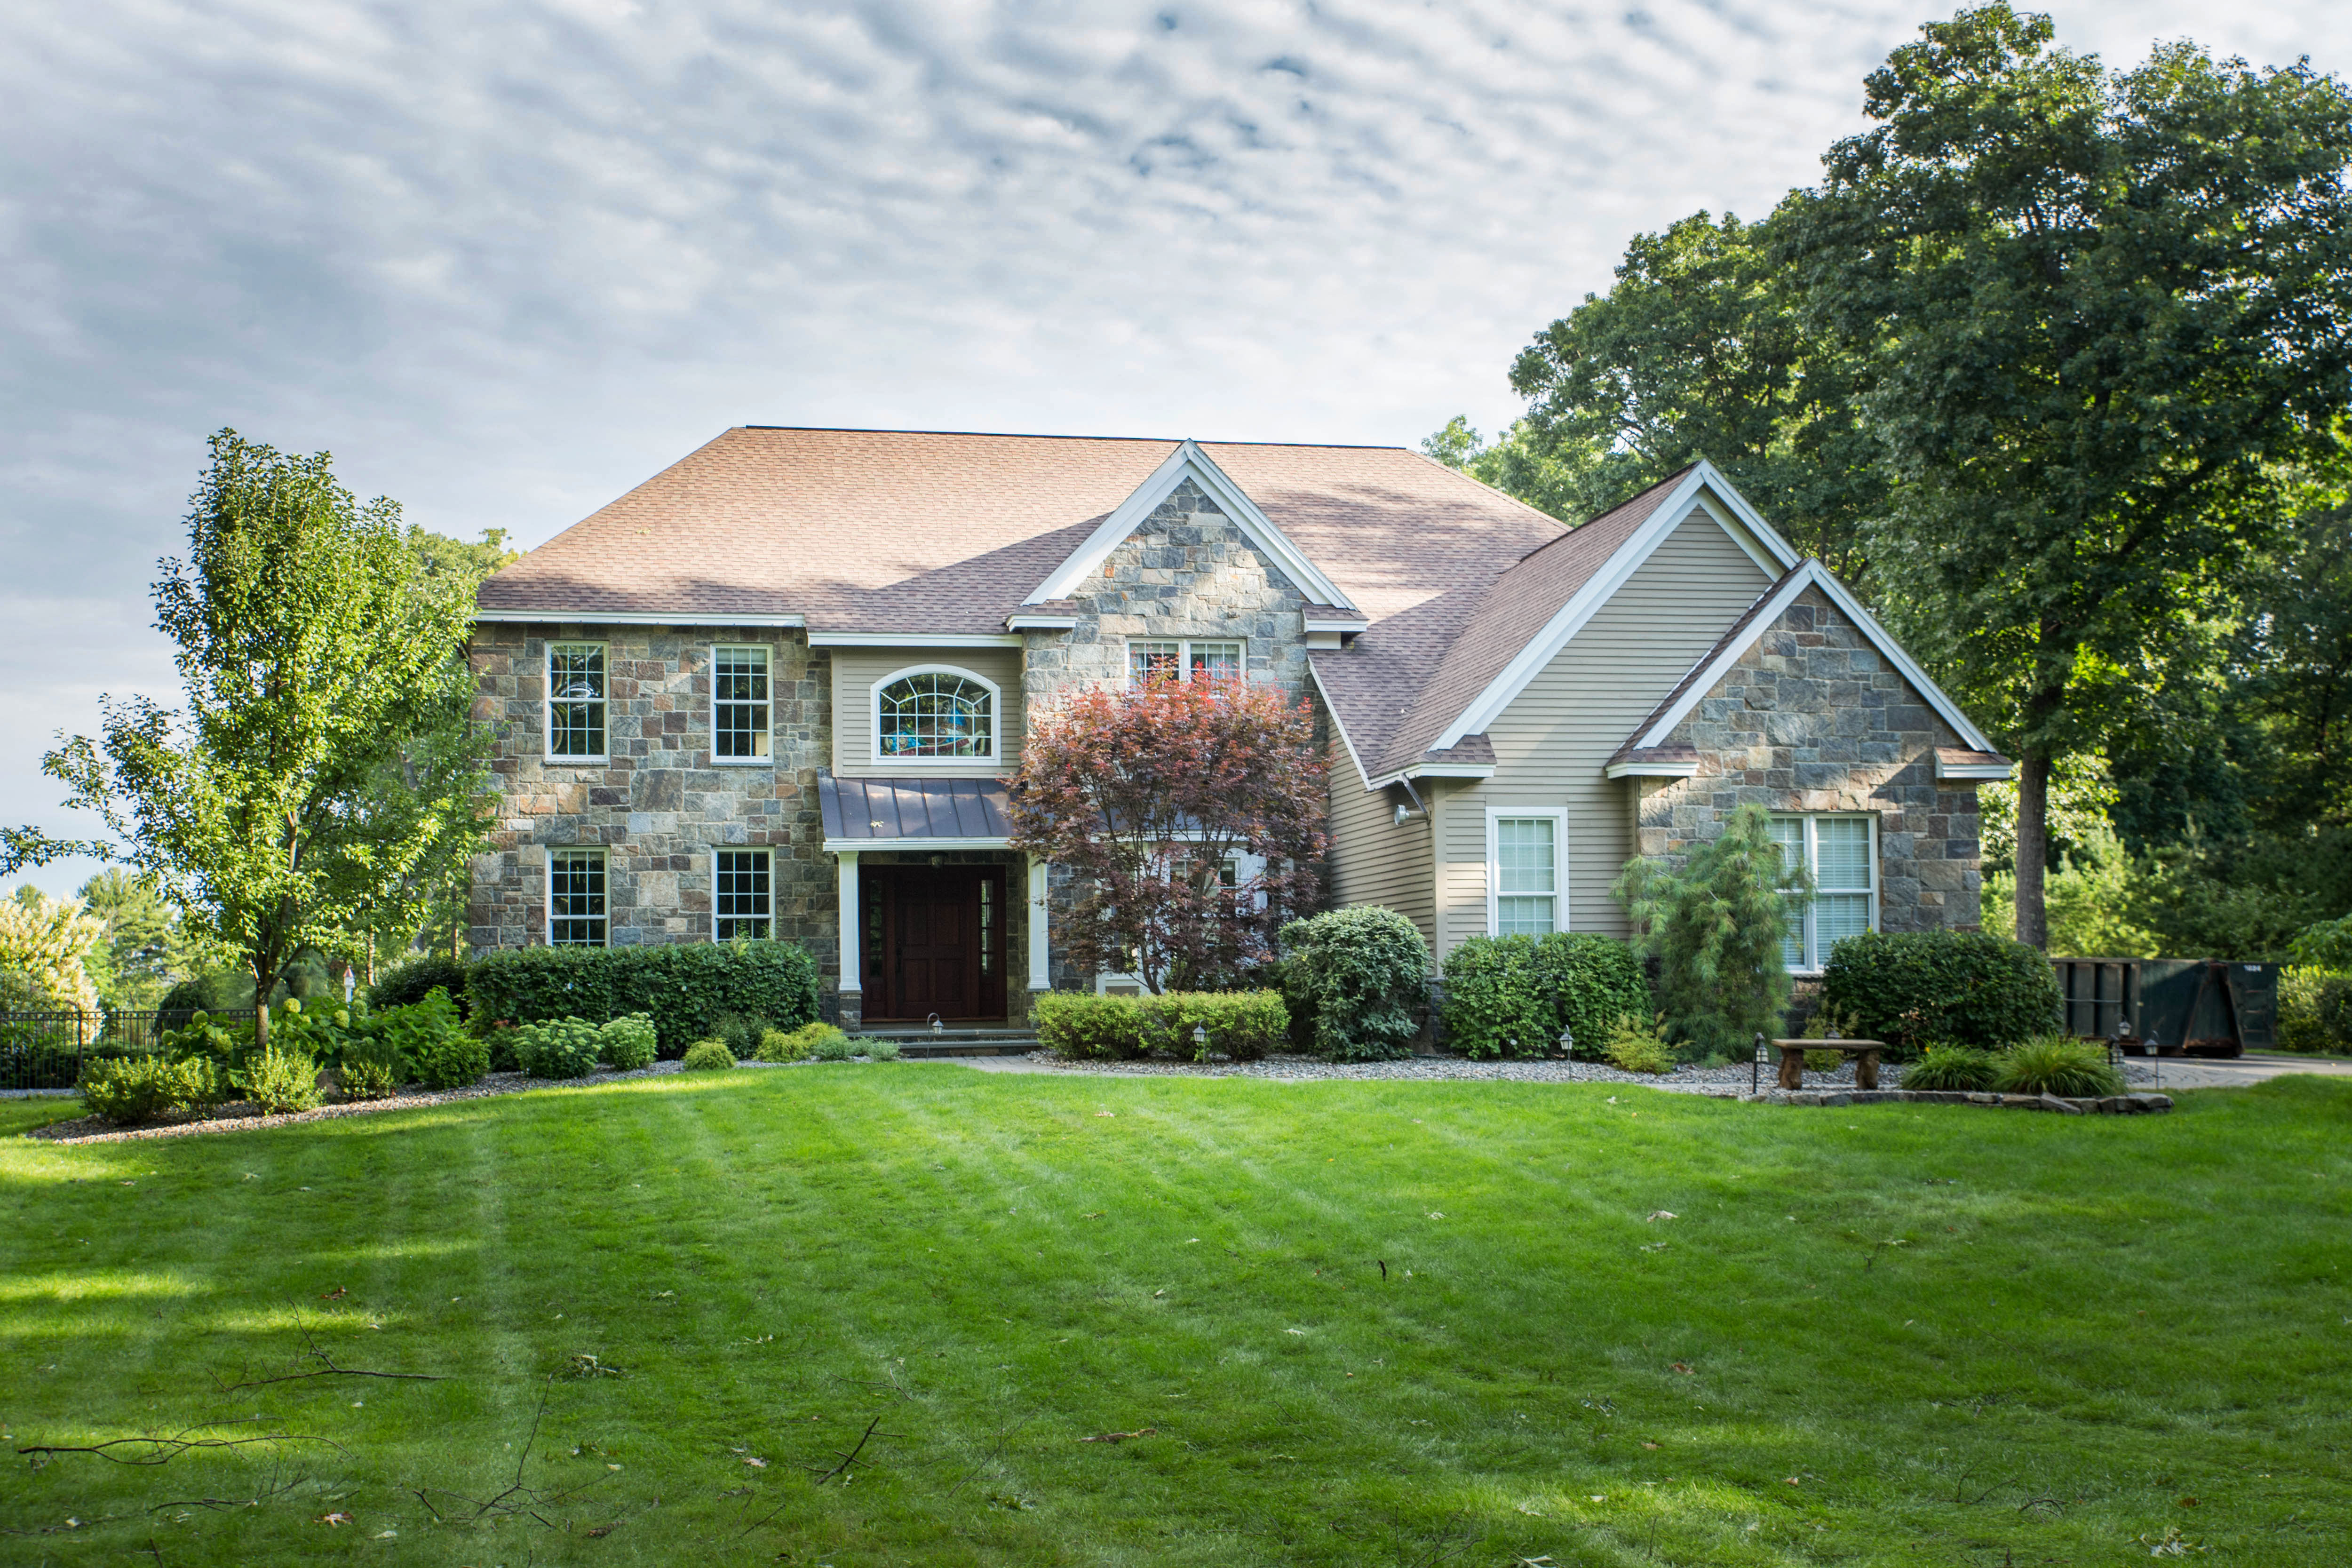 Single Family Home for Sale at Custom Saratoga Estate with Breathtaking Views 29 Beacon Hill Drive Saratoga Springs, New York 12866 United States